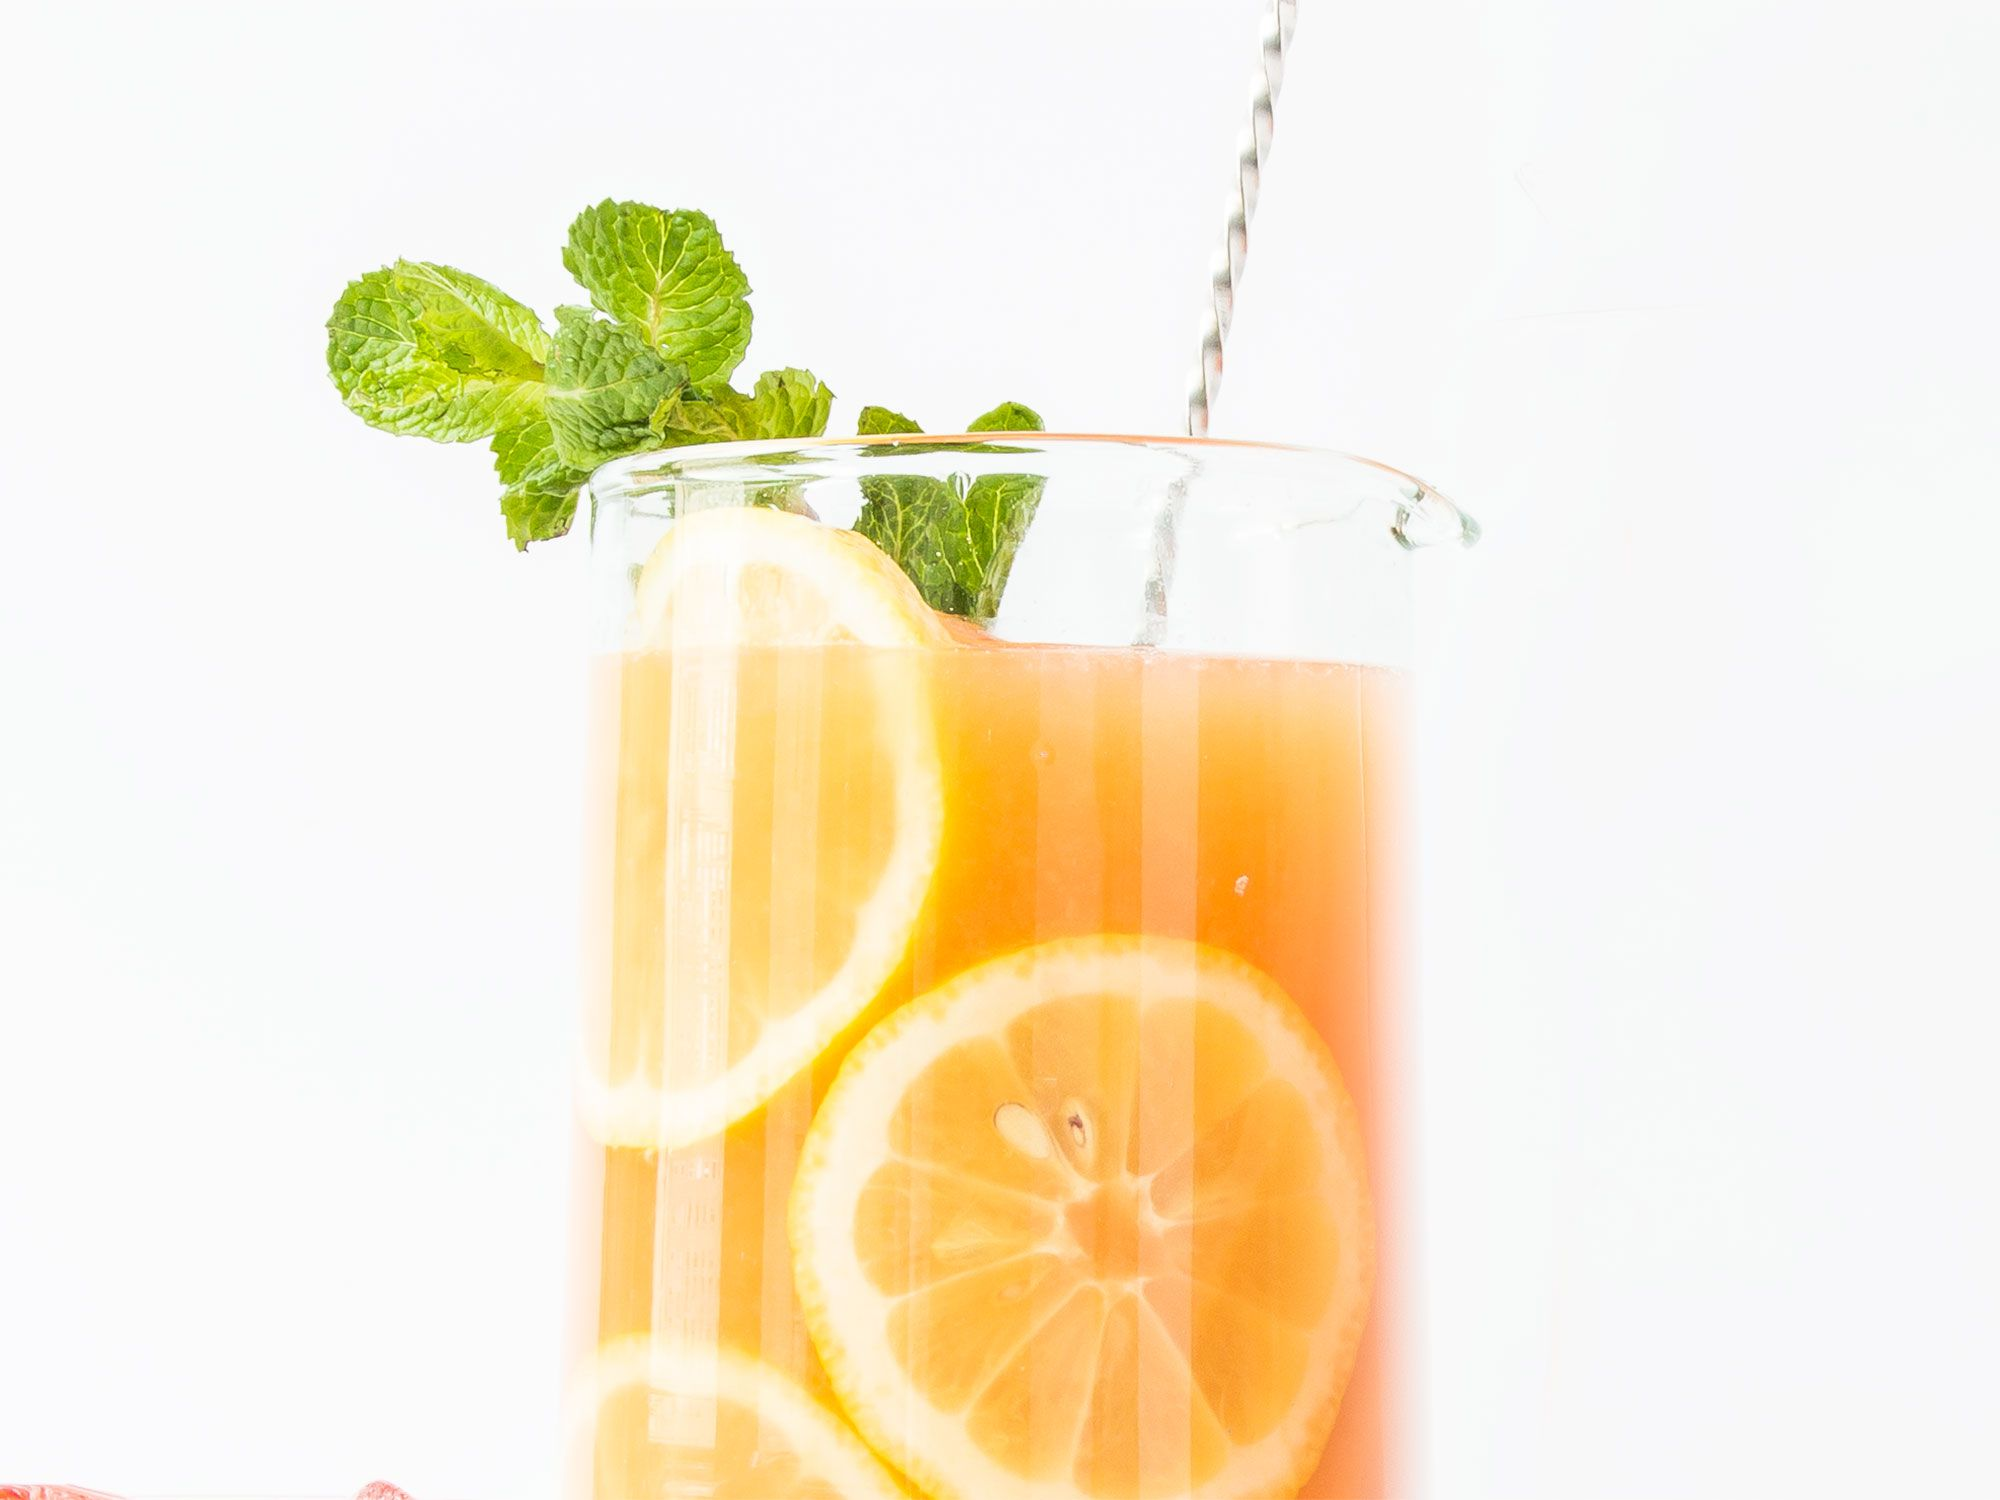 """A papaya shrub, easily made weeks in advance, adds earthy sweet-and-sour notes to this playful prosecco sparkler. Get the recipe for <a href=""""http://www.saveur.com/rose-all-day-cocktail-recipe"""">Rosé All Day</a>"""